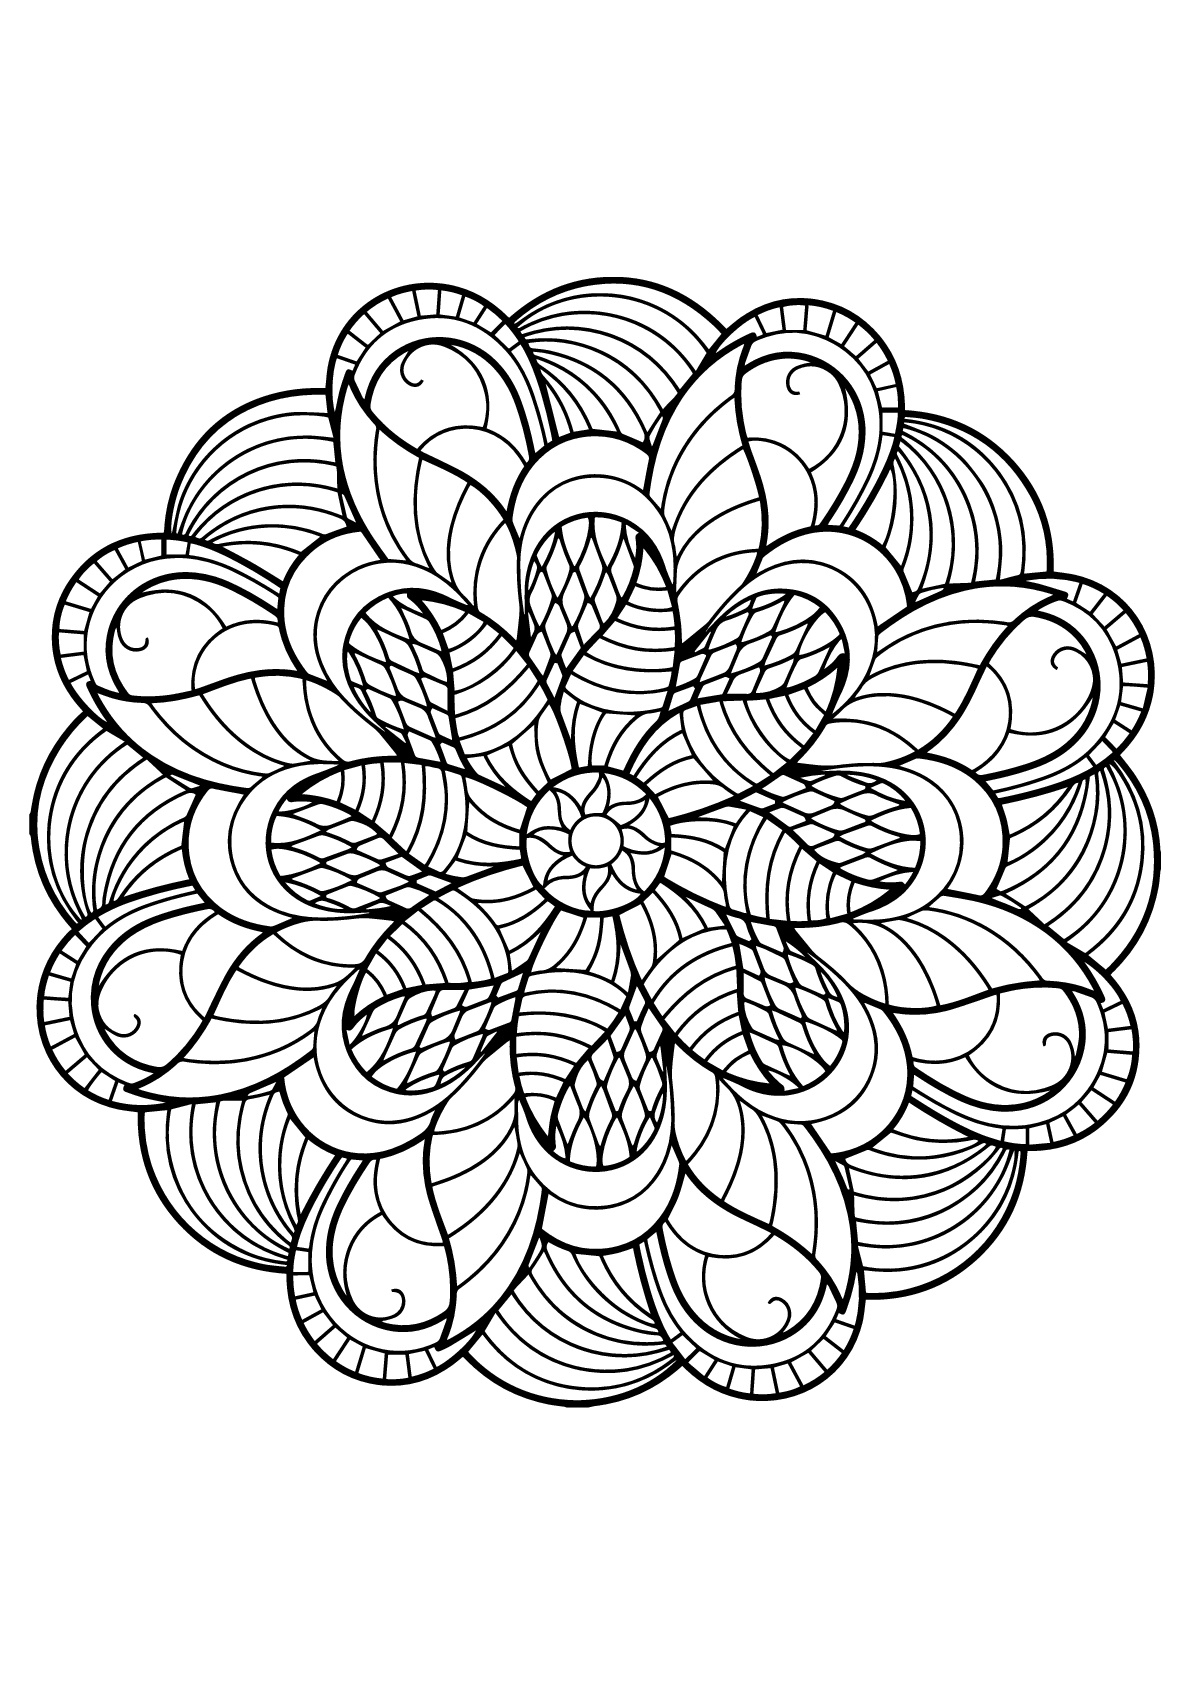 - Mandala From Free Coloring Books For Adults 6 - Mandalas Adult